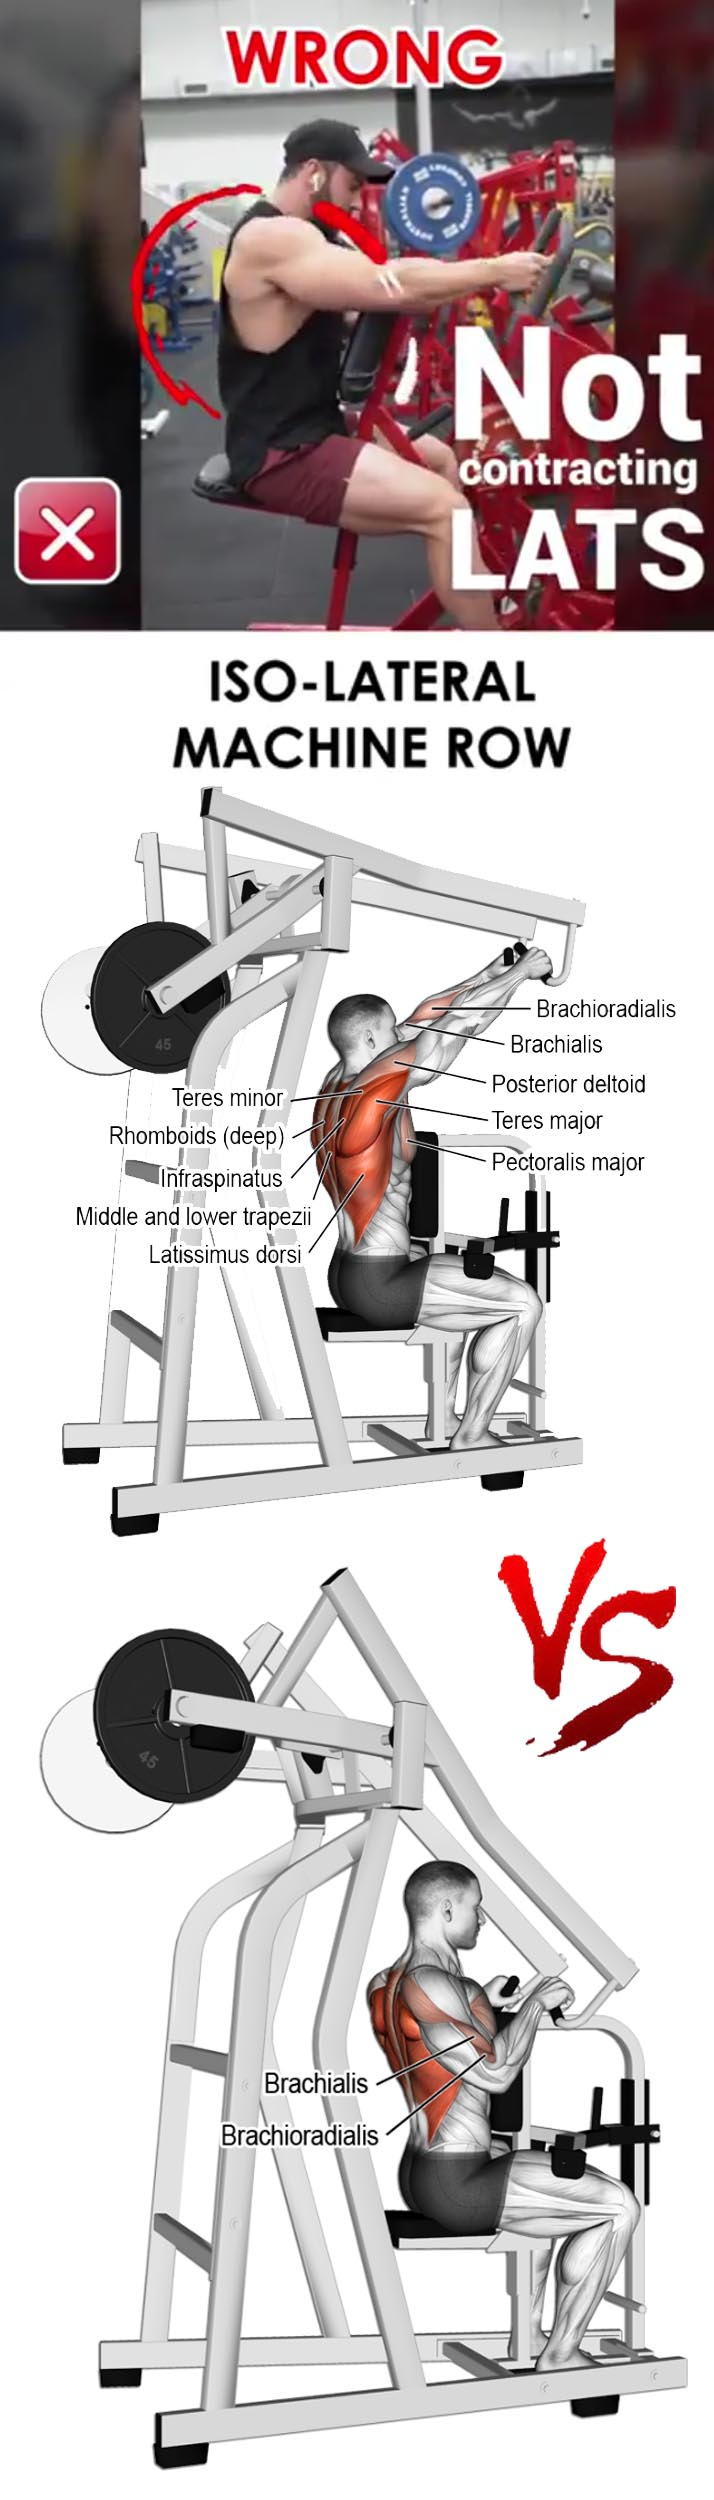 ISO LATERAL MACHINE ROW